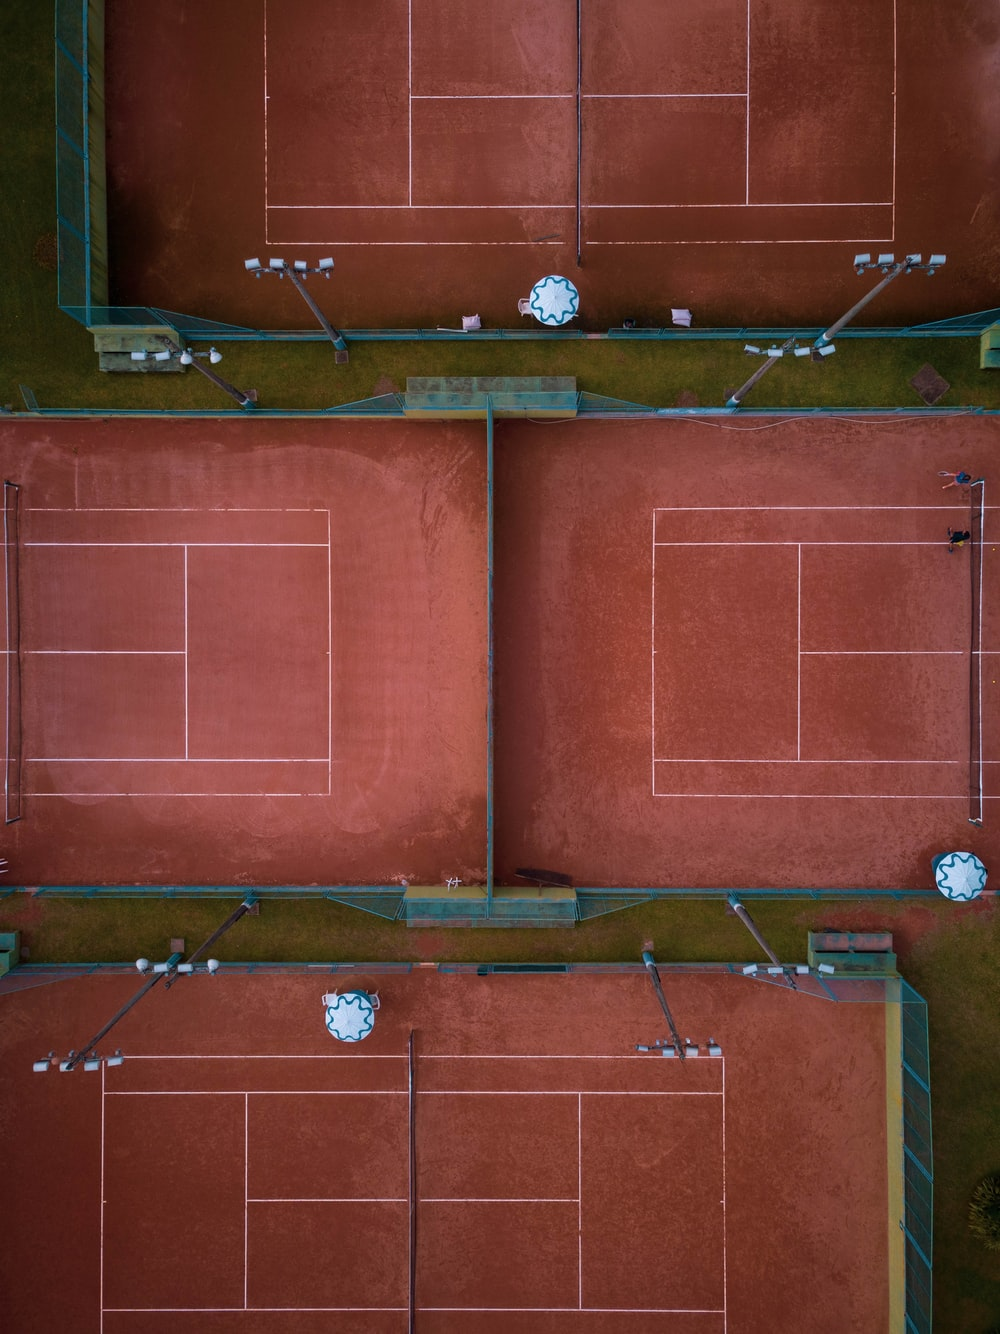 aerial view of four tennis courts